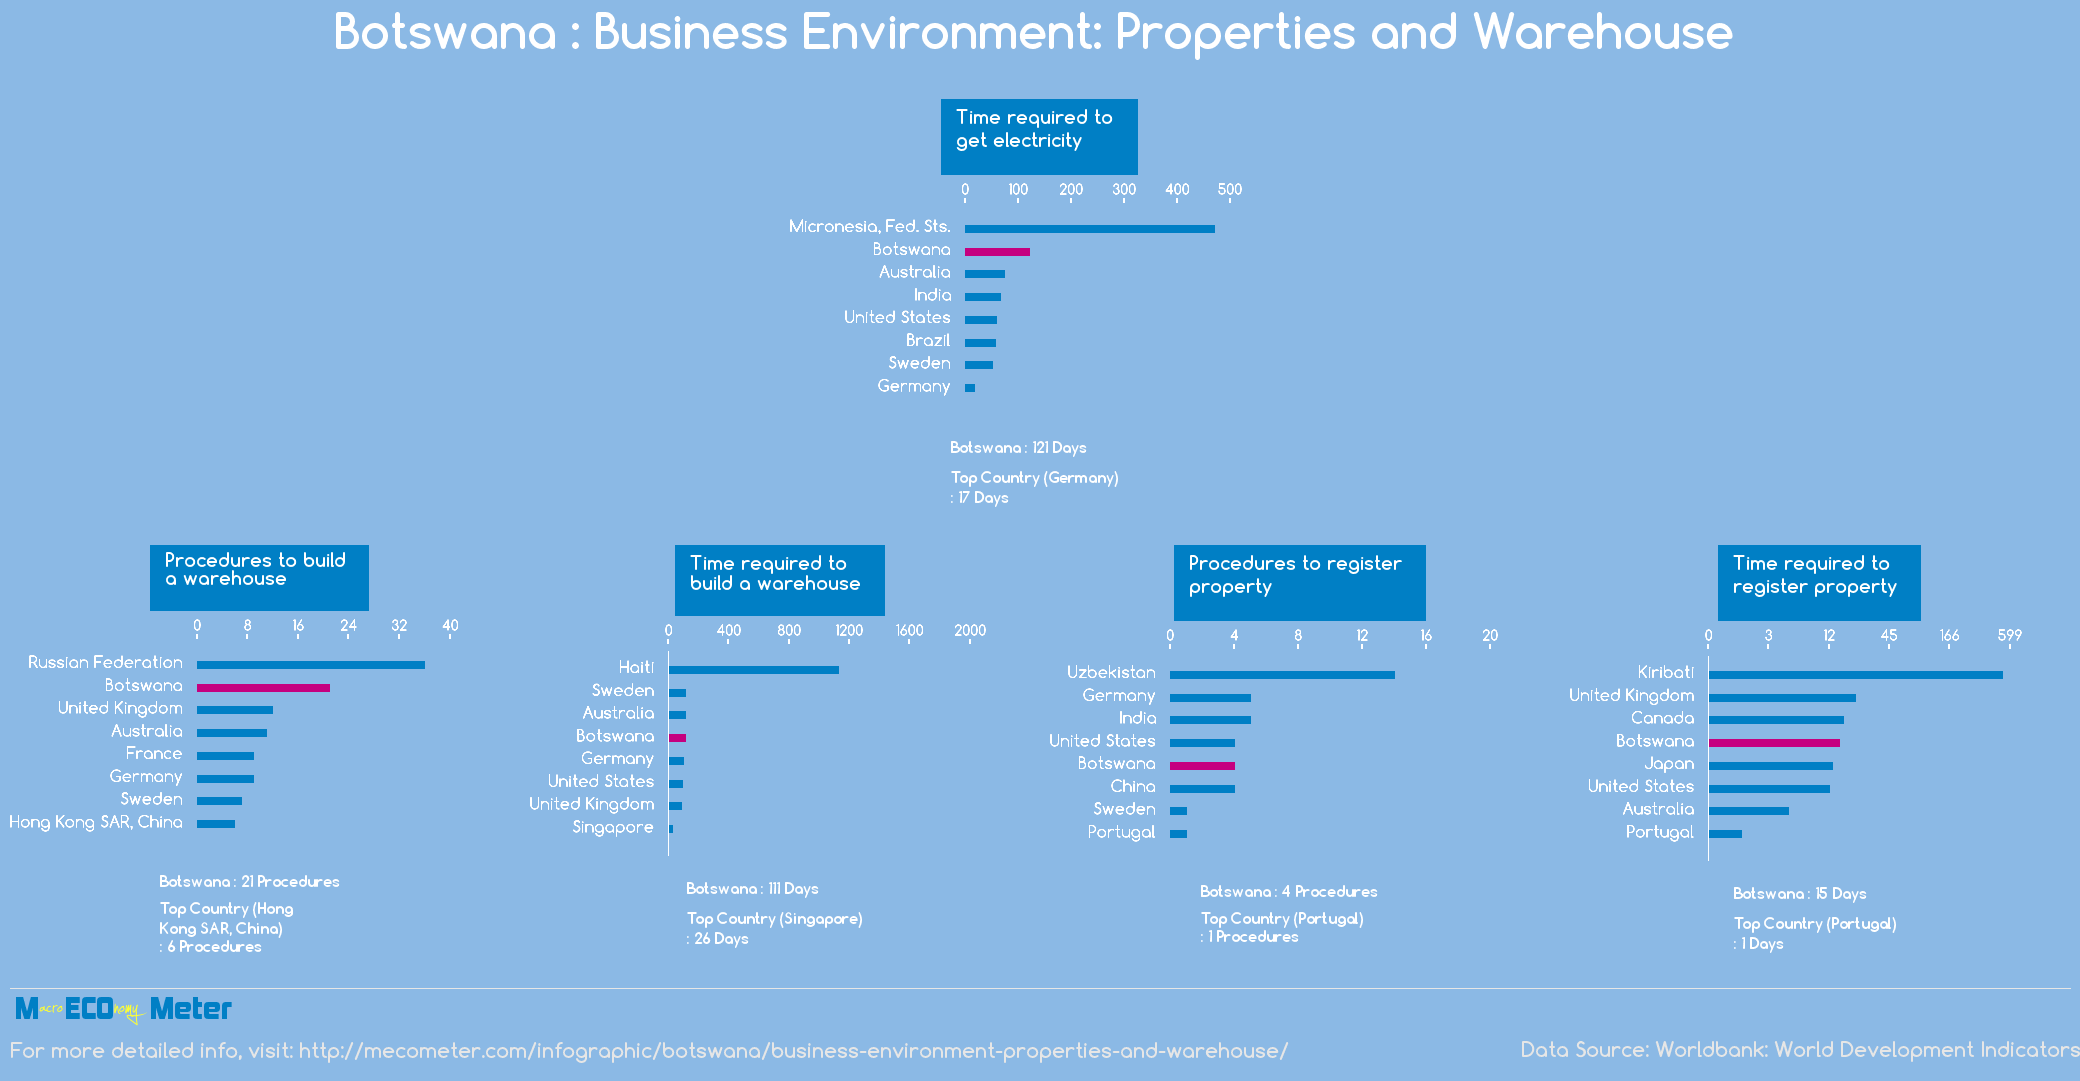 Botswana : Business Environment: Properties and Warehouse